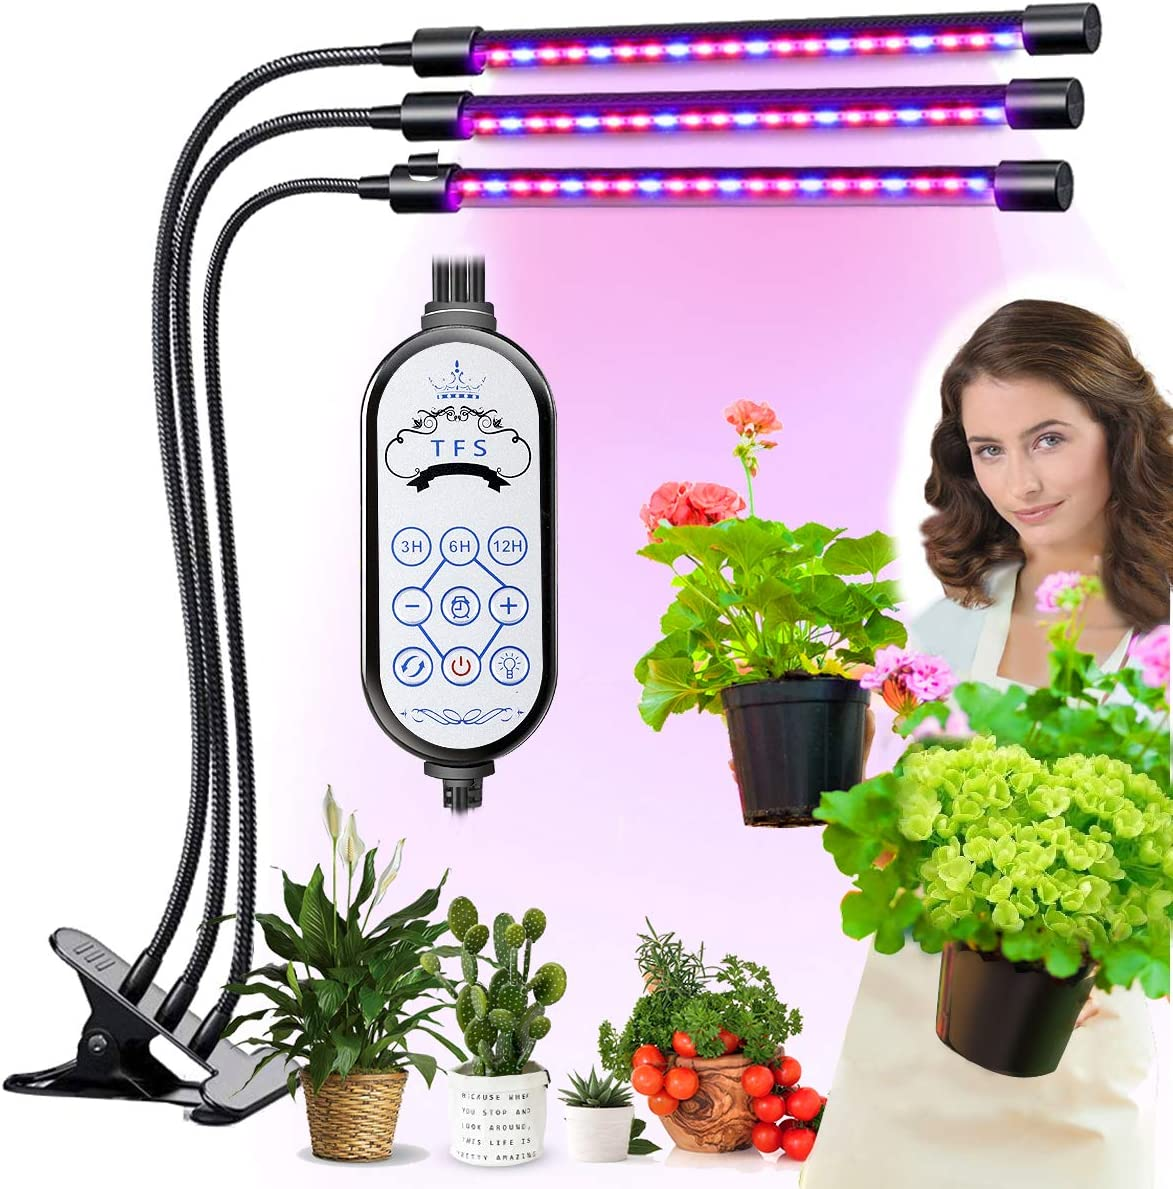 LED Grow Light for Indoor Plant – 60W Tri Head On Desk Plants Growing Lamp with 6 Dimmable Levels Auto Timer Perfect for House Garden Hydroponics Succulent Red Blue Spectrum Clip Adjustable Gooseneck